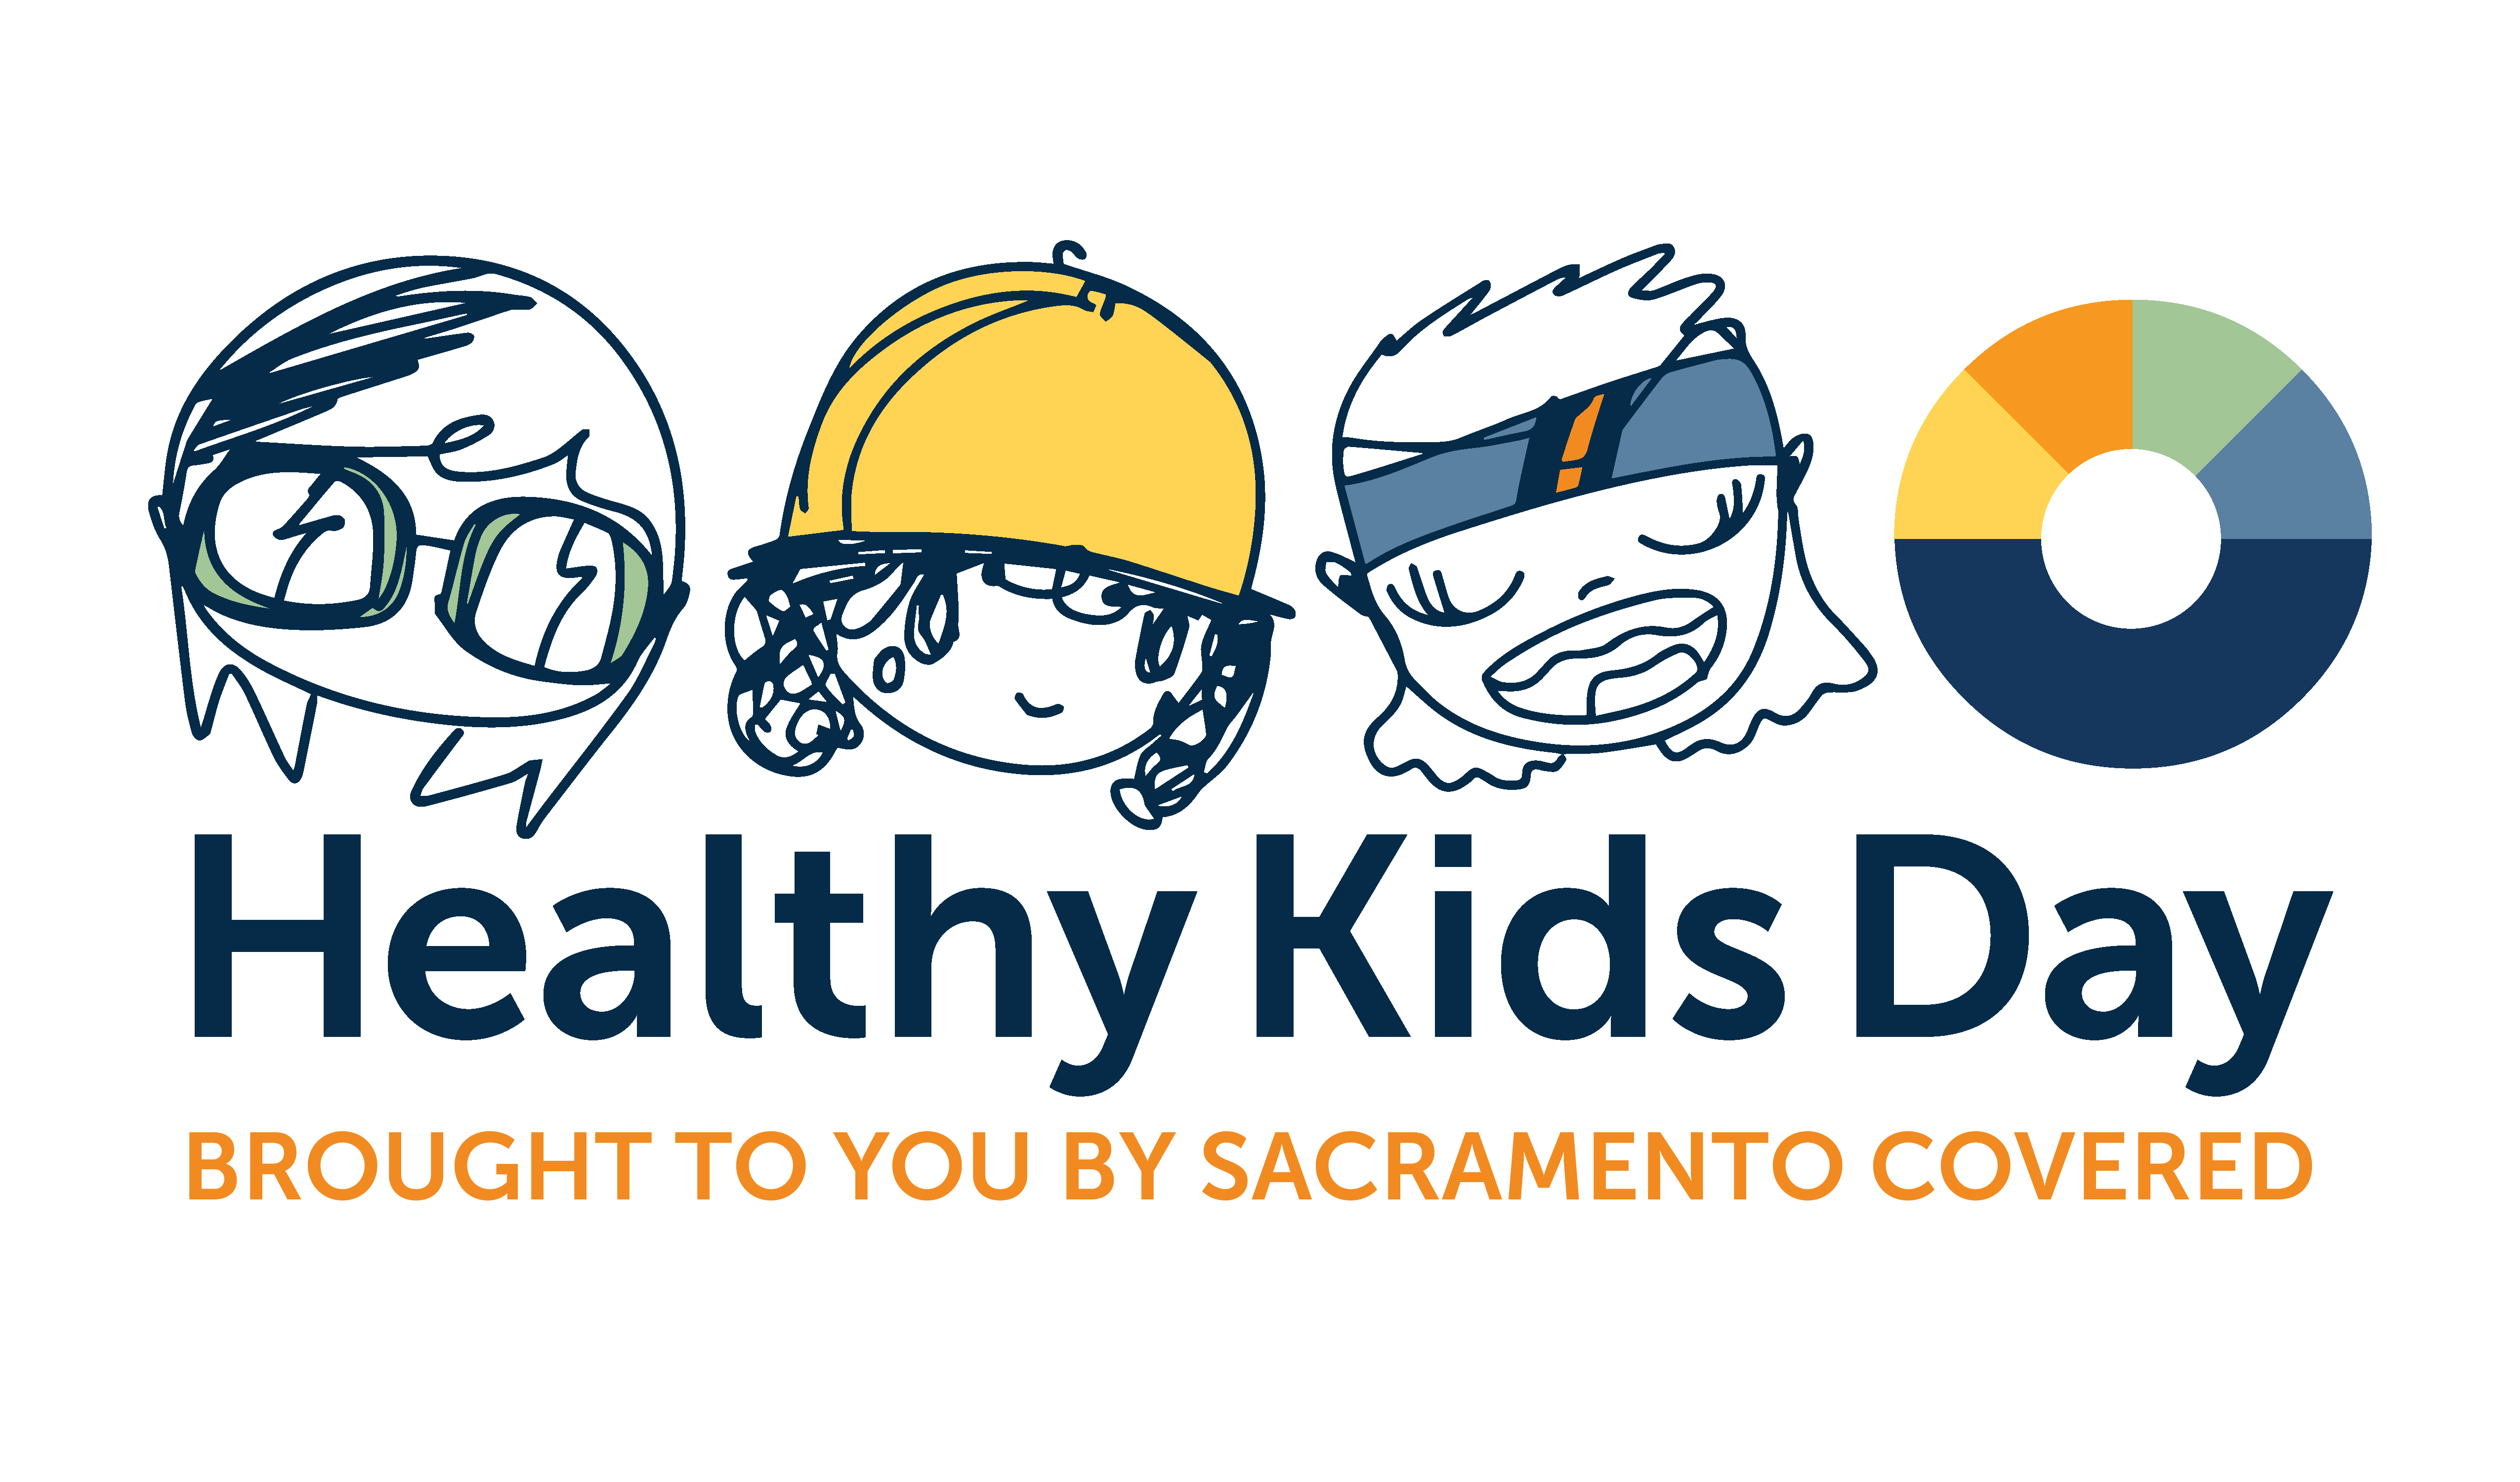 Sacramento Covered Event Encourages Kids To Get Healthy